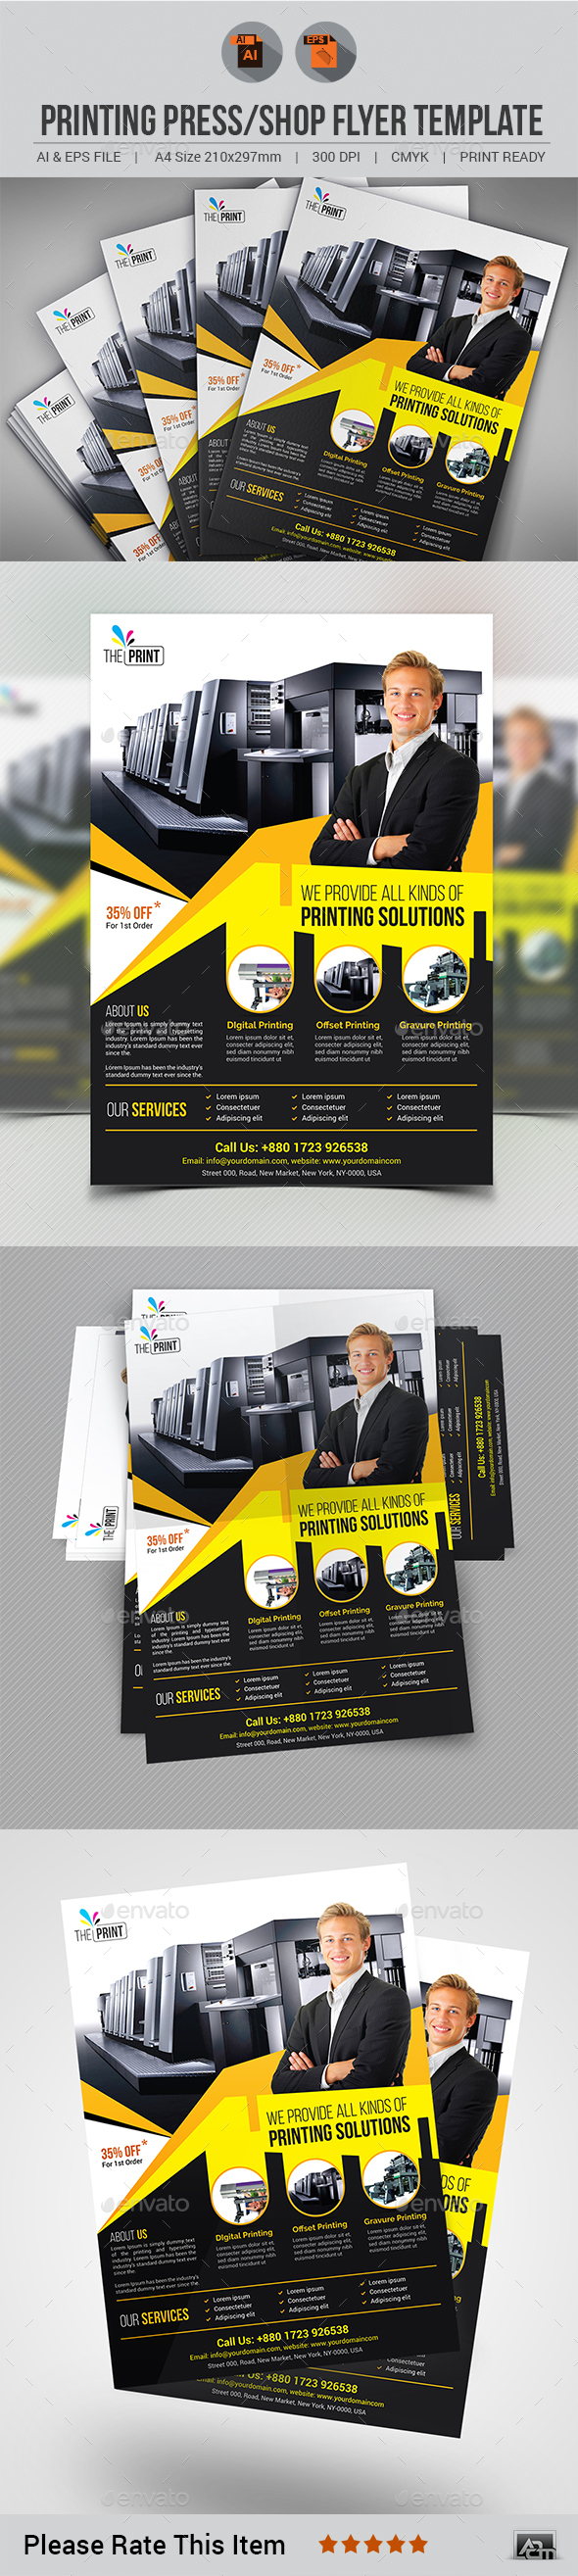 Printing Press/Shop Flyer V2 - Corporate Flyers